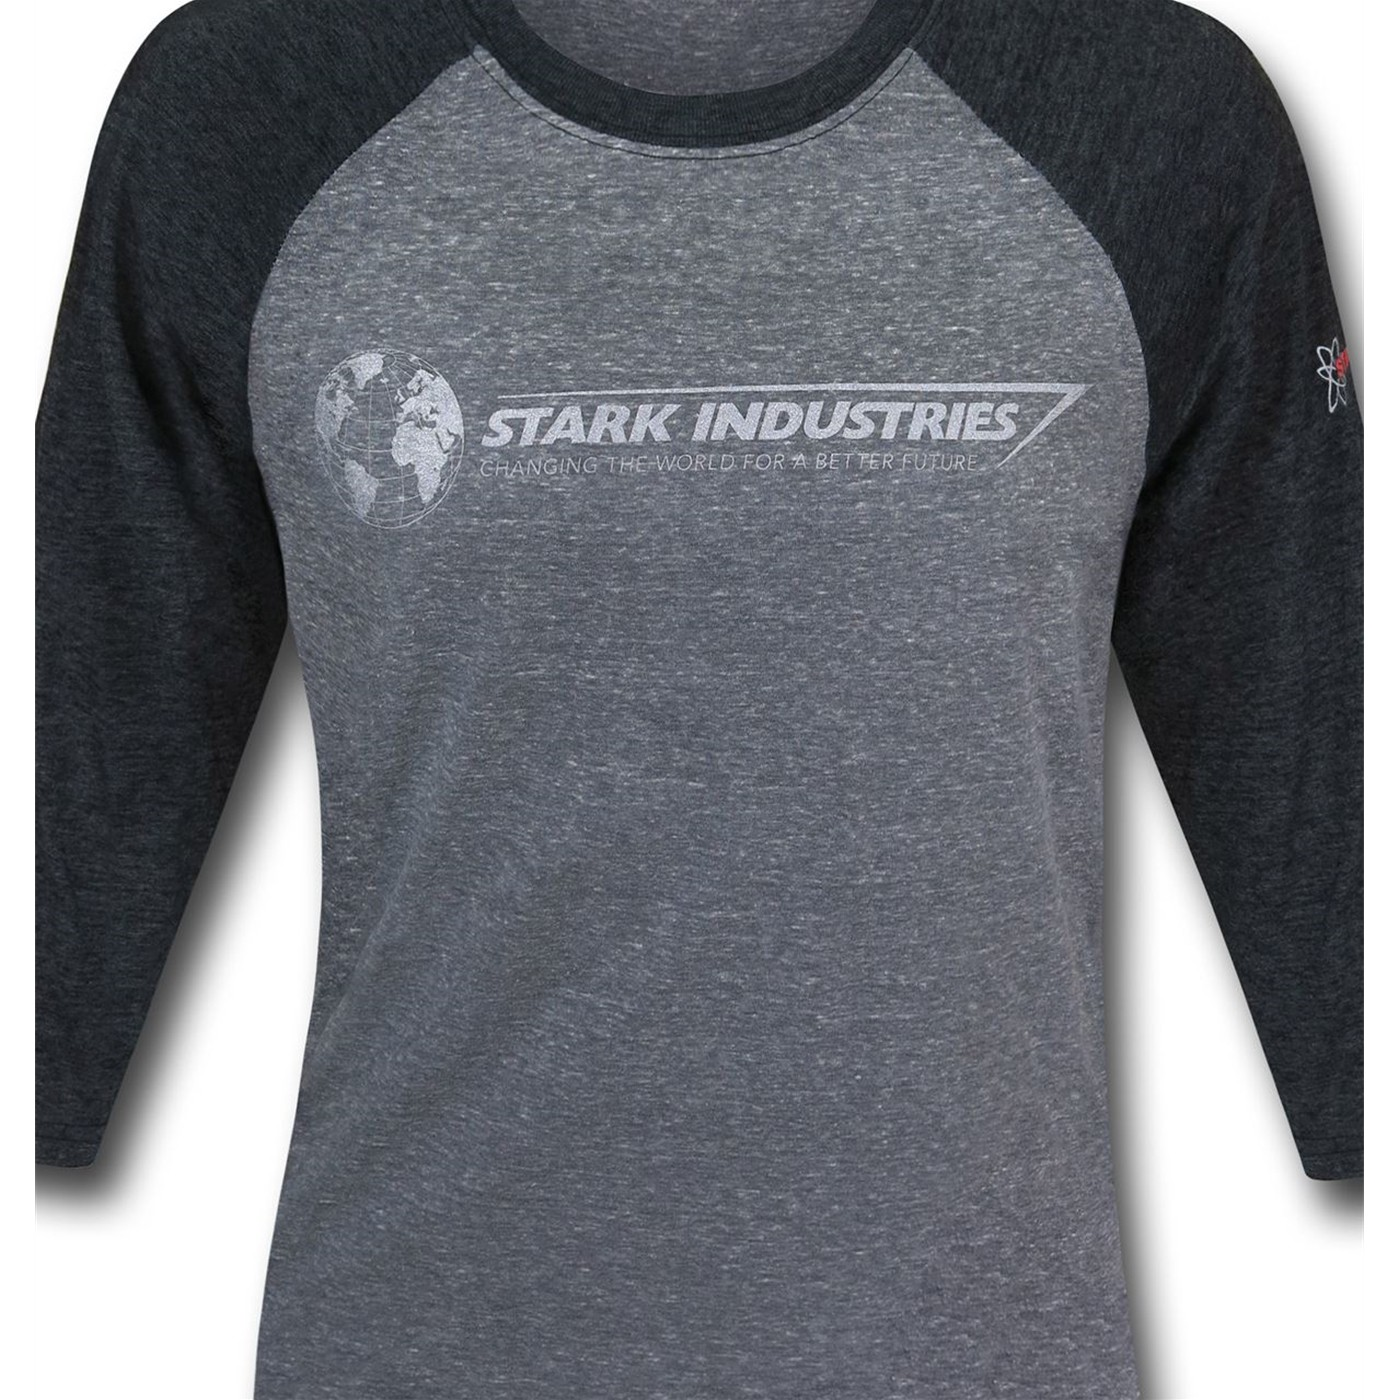 Iron Man Stark Industries Expo Men's Baseball T-Shirt